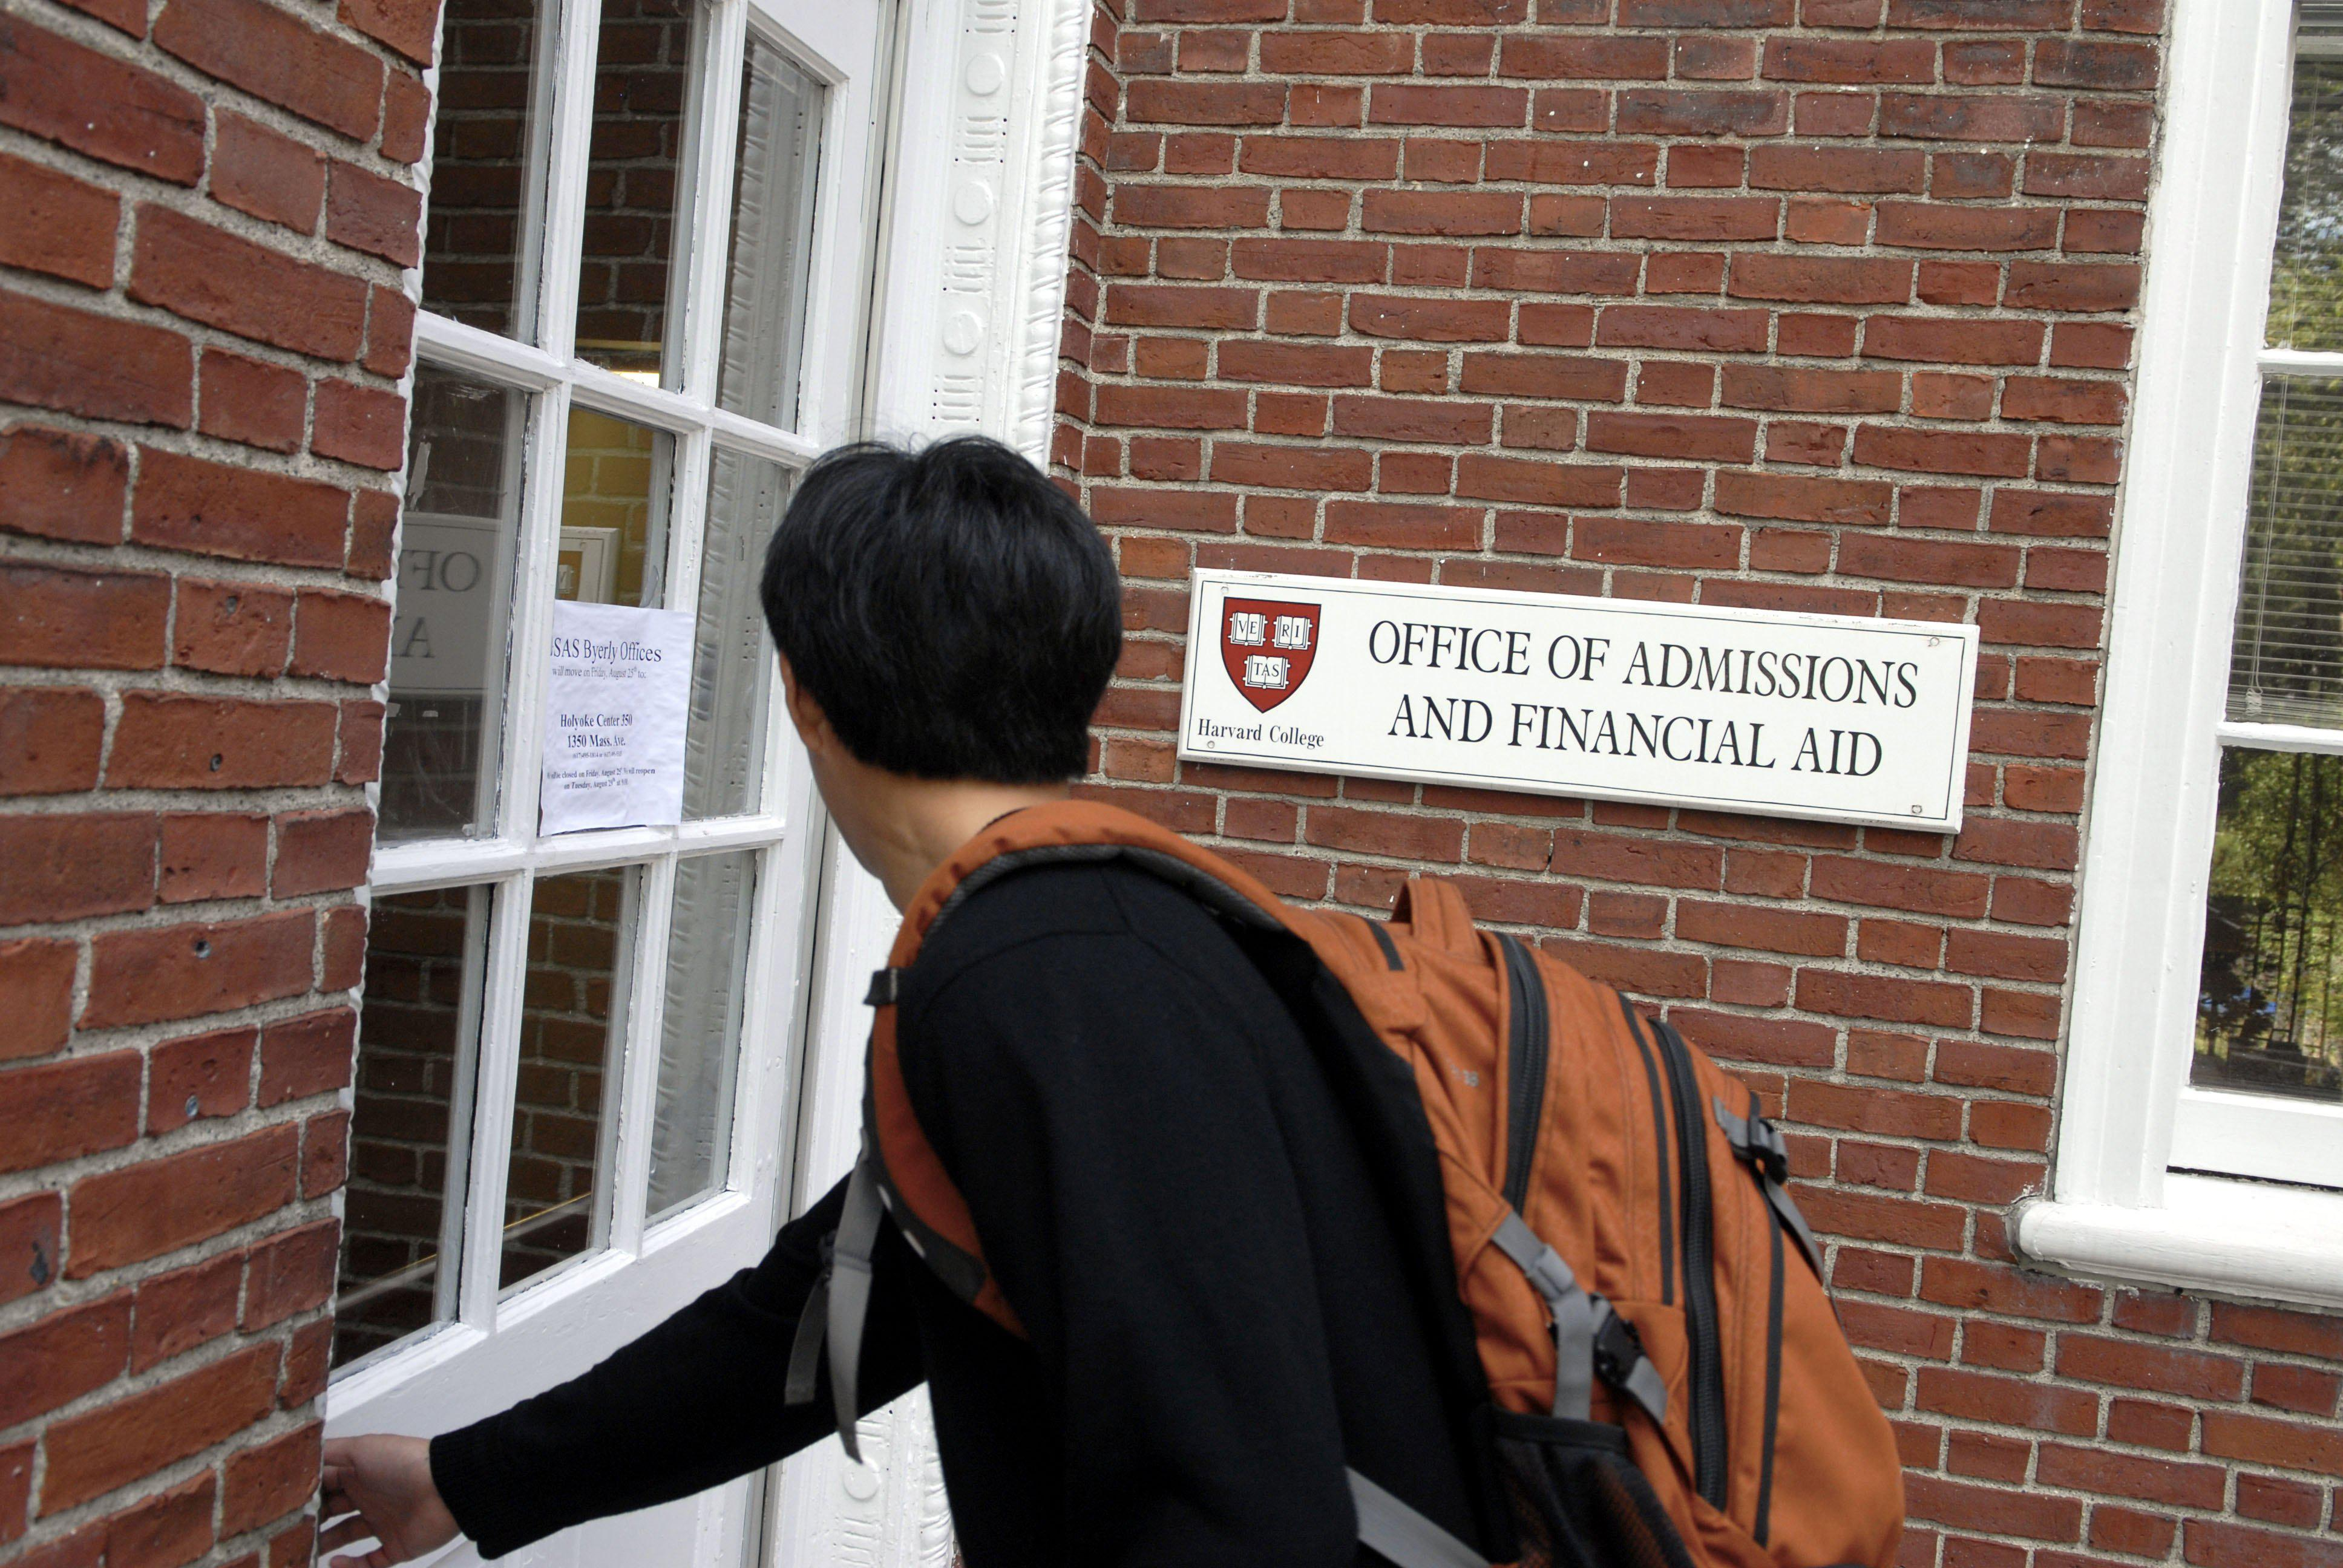 The decision runs parallel to a lawsuit accusing Harvard of discriminating against Asian Americans.